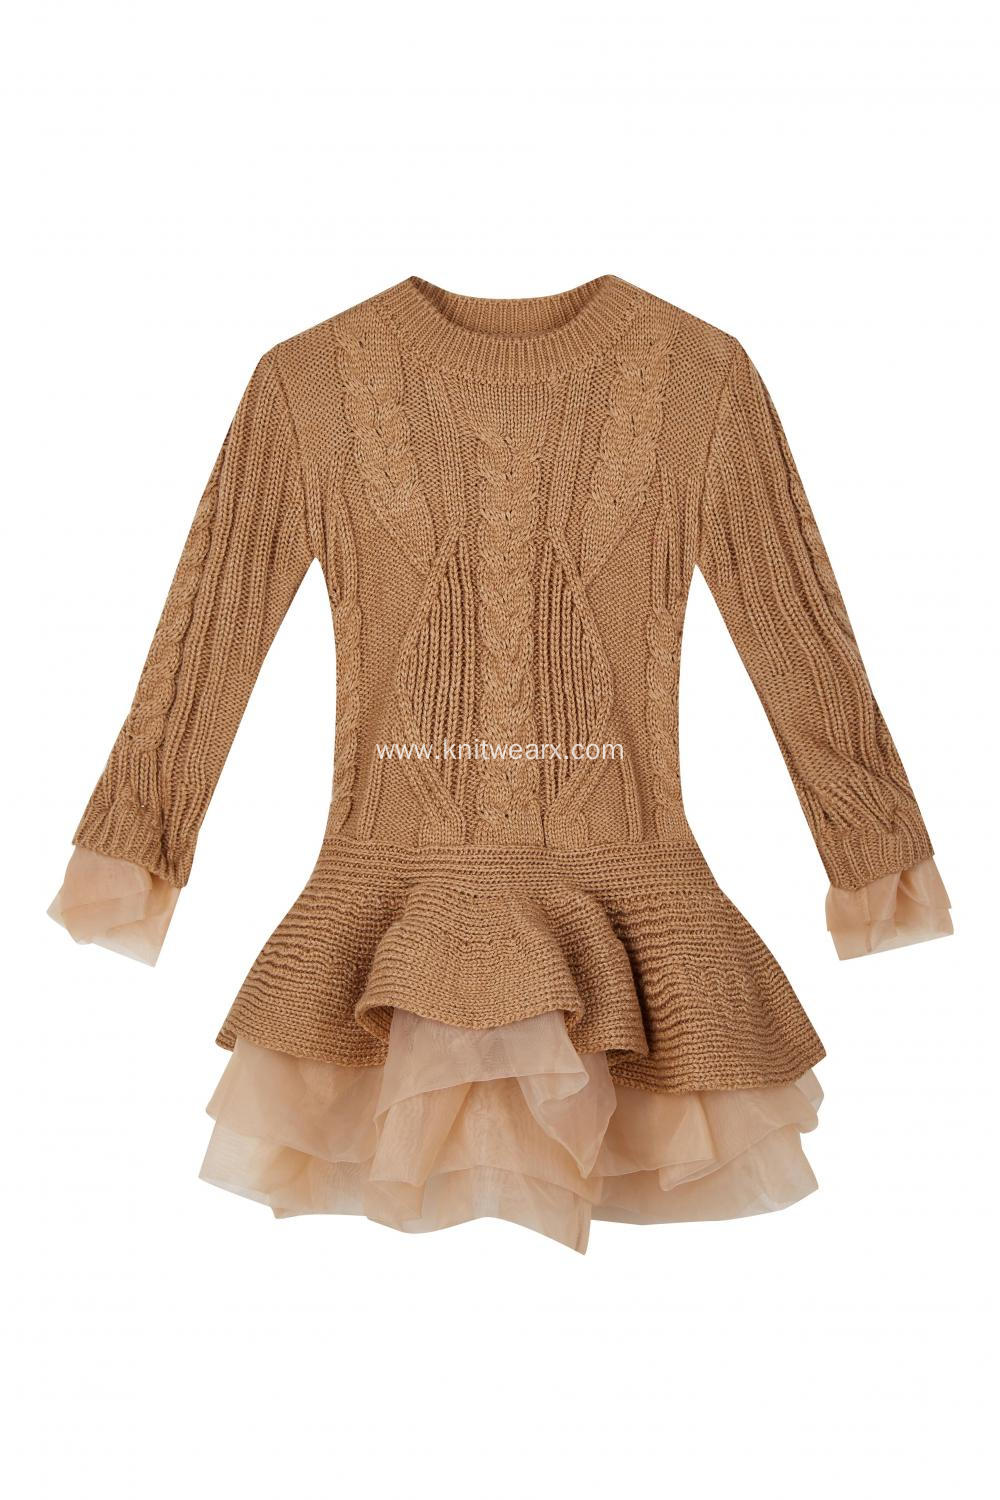 Girl's Knitted Crepe Cuff and Hem Fishtail Dress